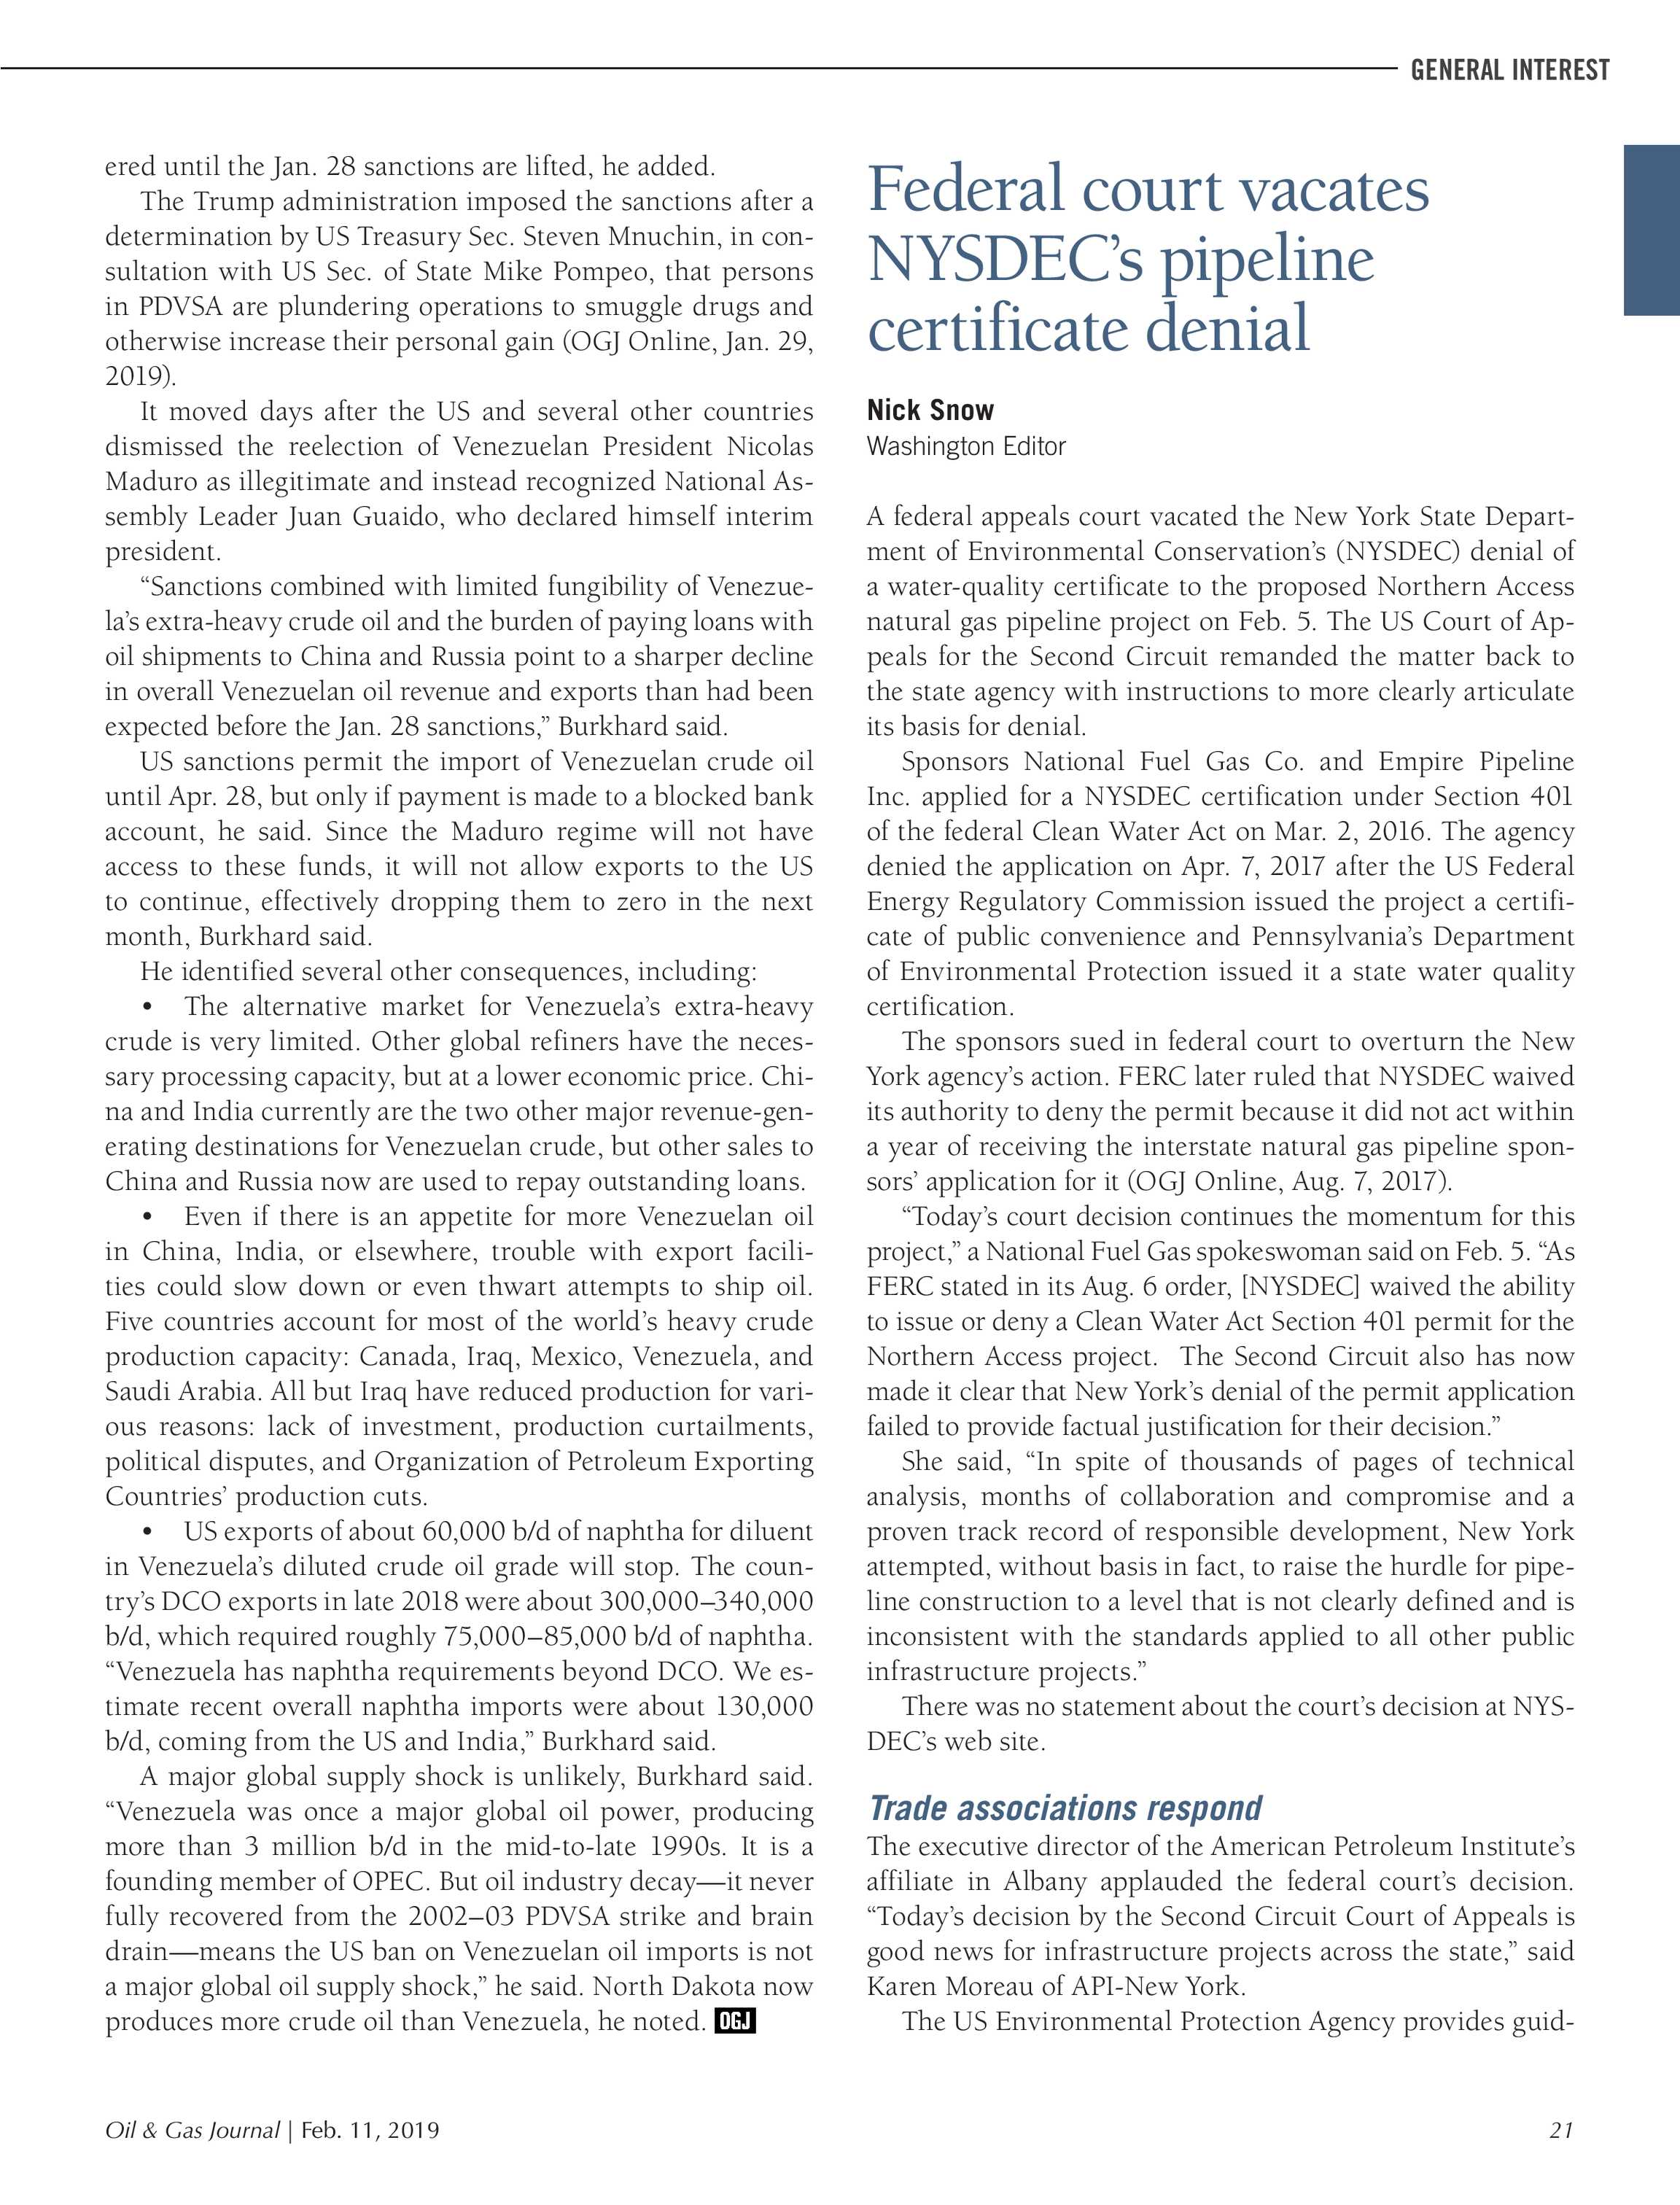 Oil & Gas Journal - February 11, 2019 - page 21